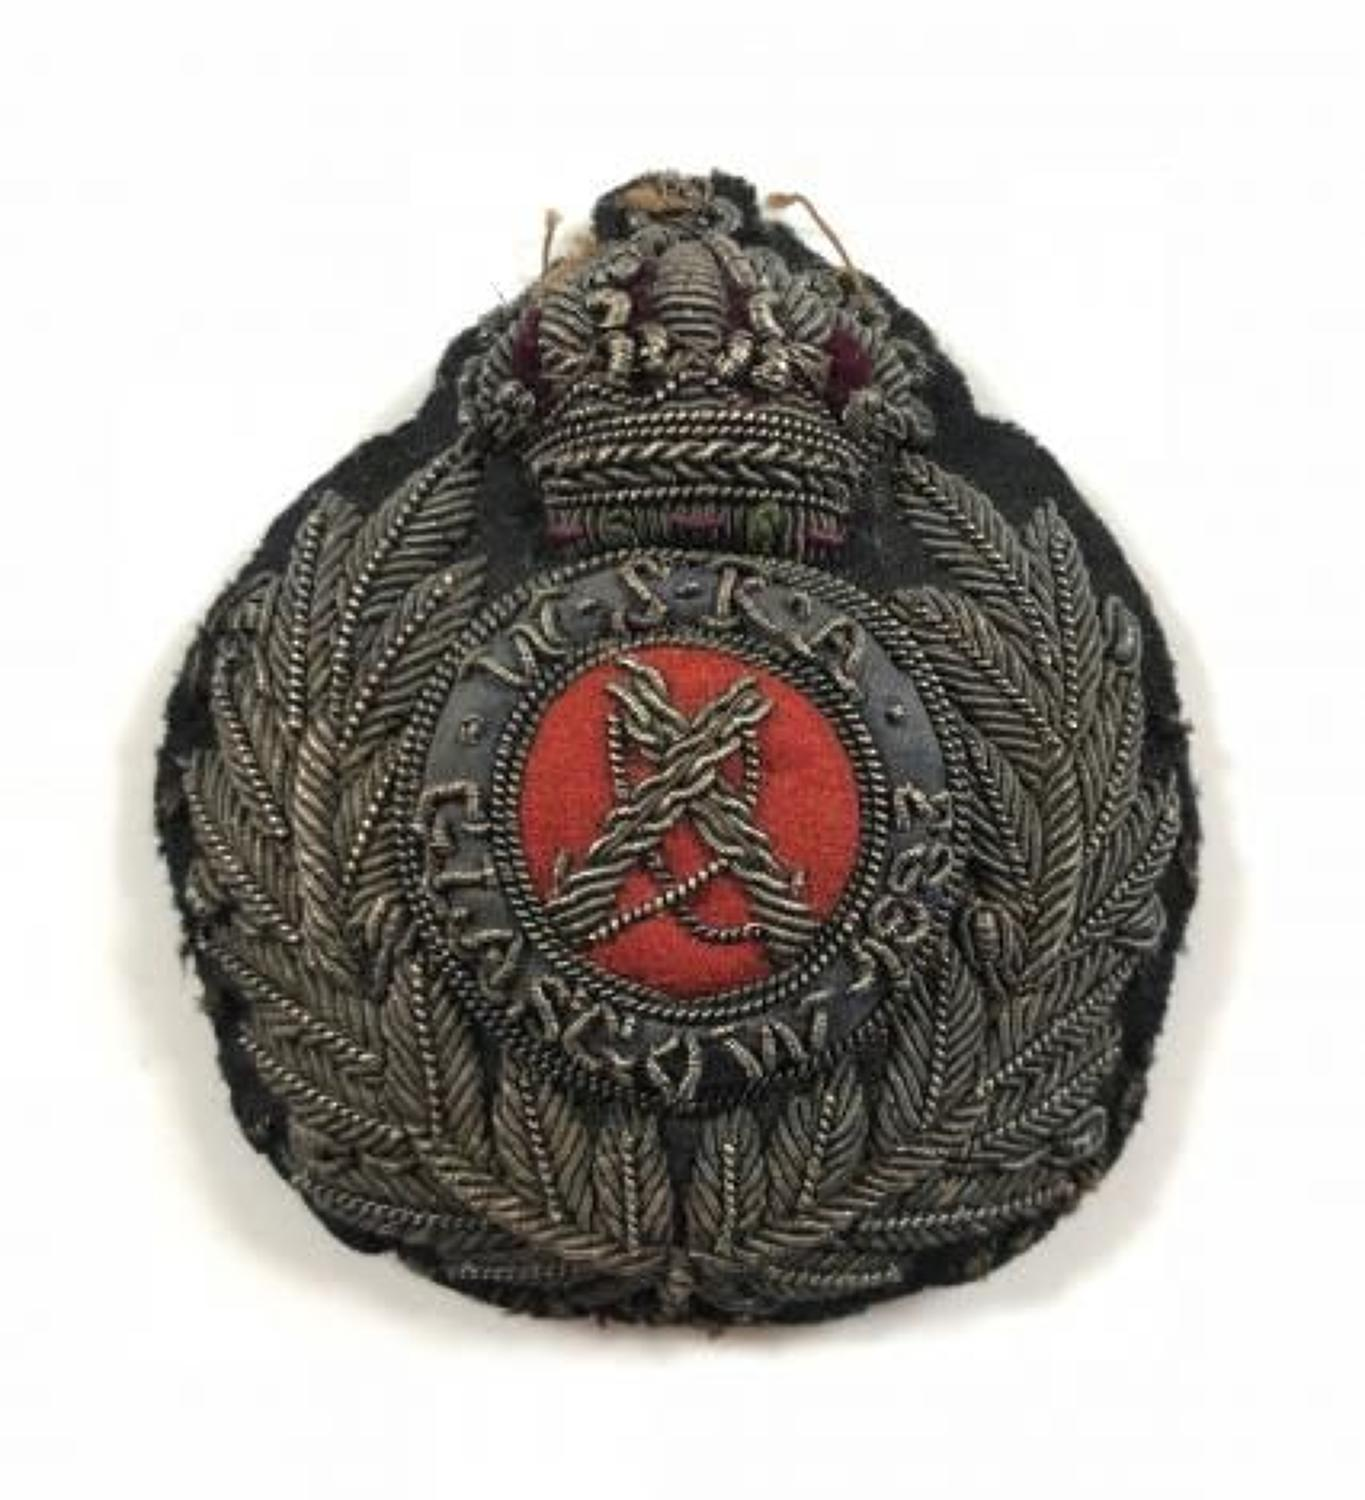 Victorian WSRA Glasgow 1883 Shooting Prize Badge.